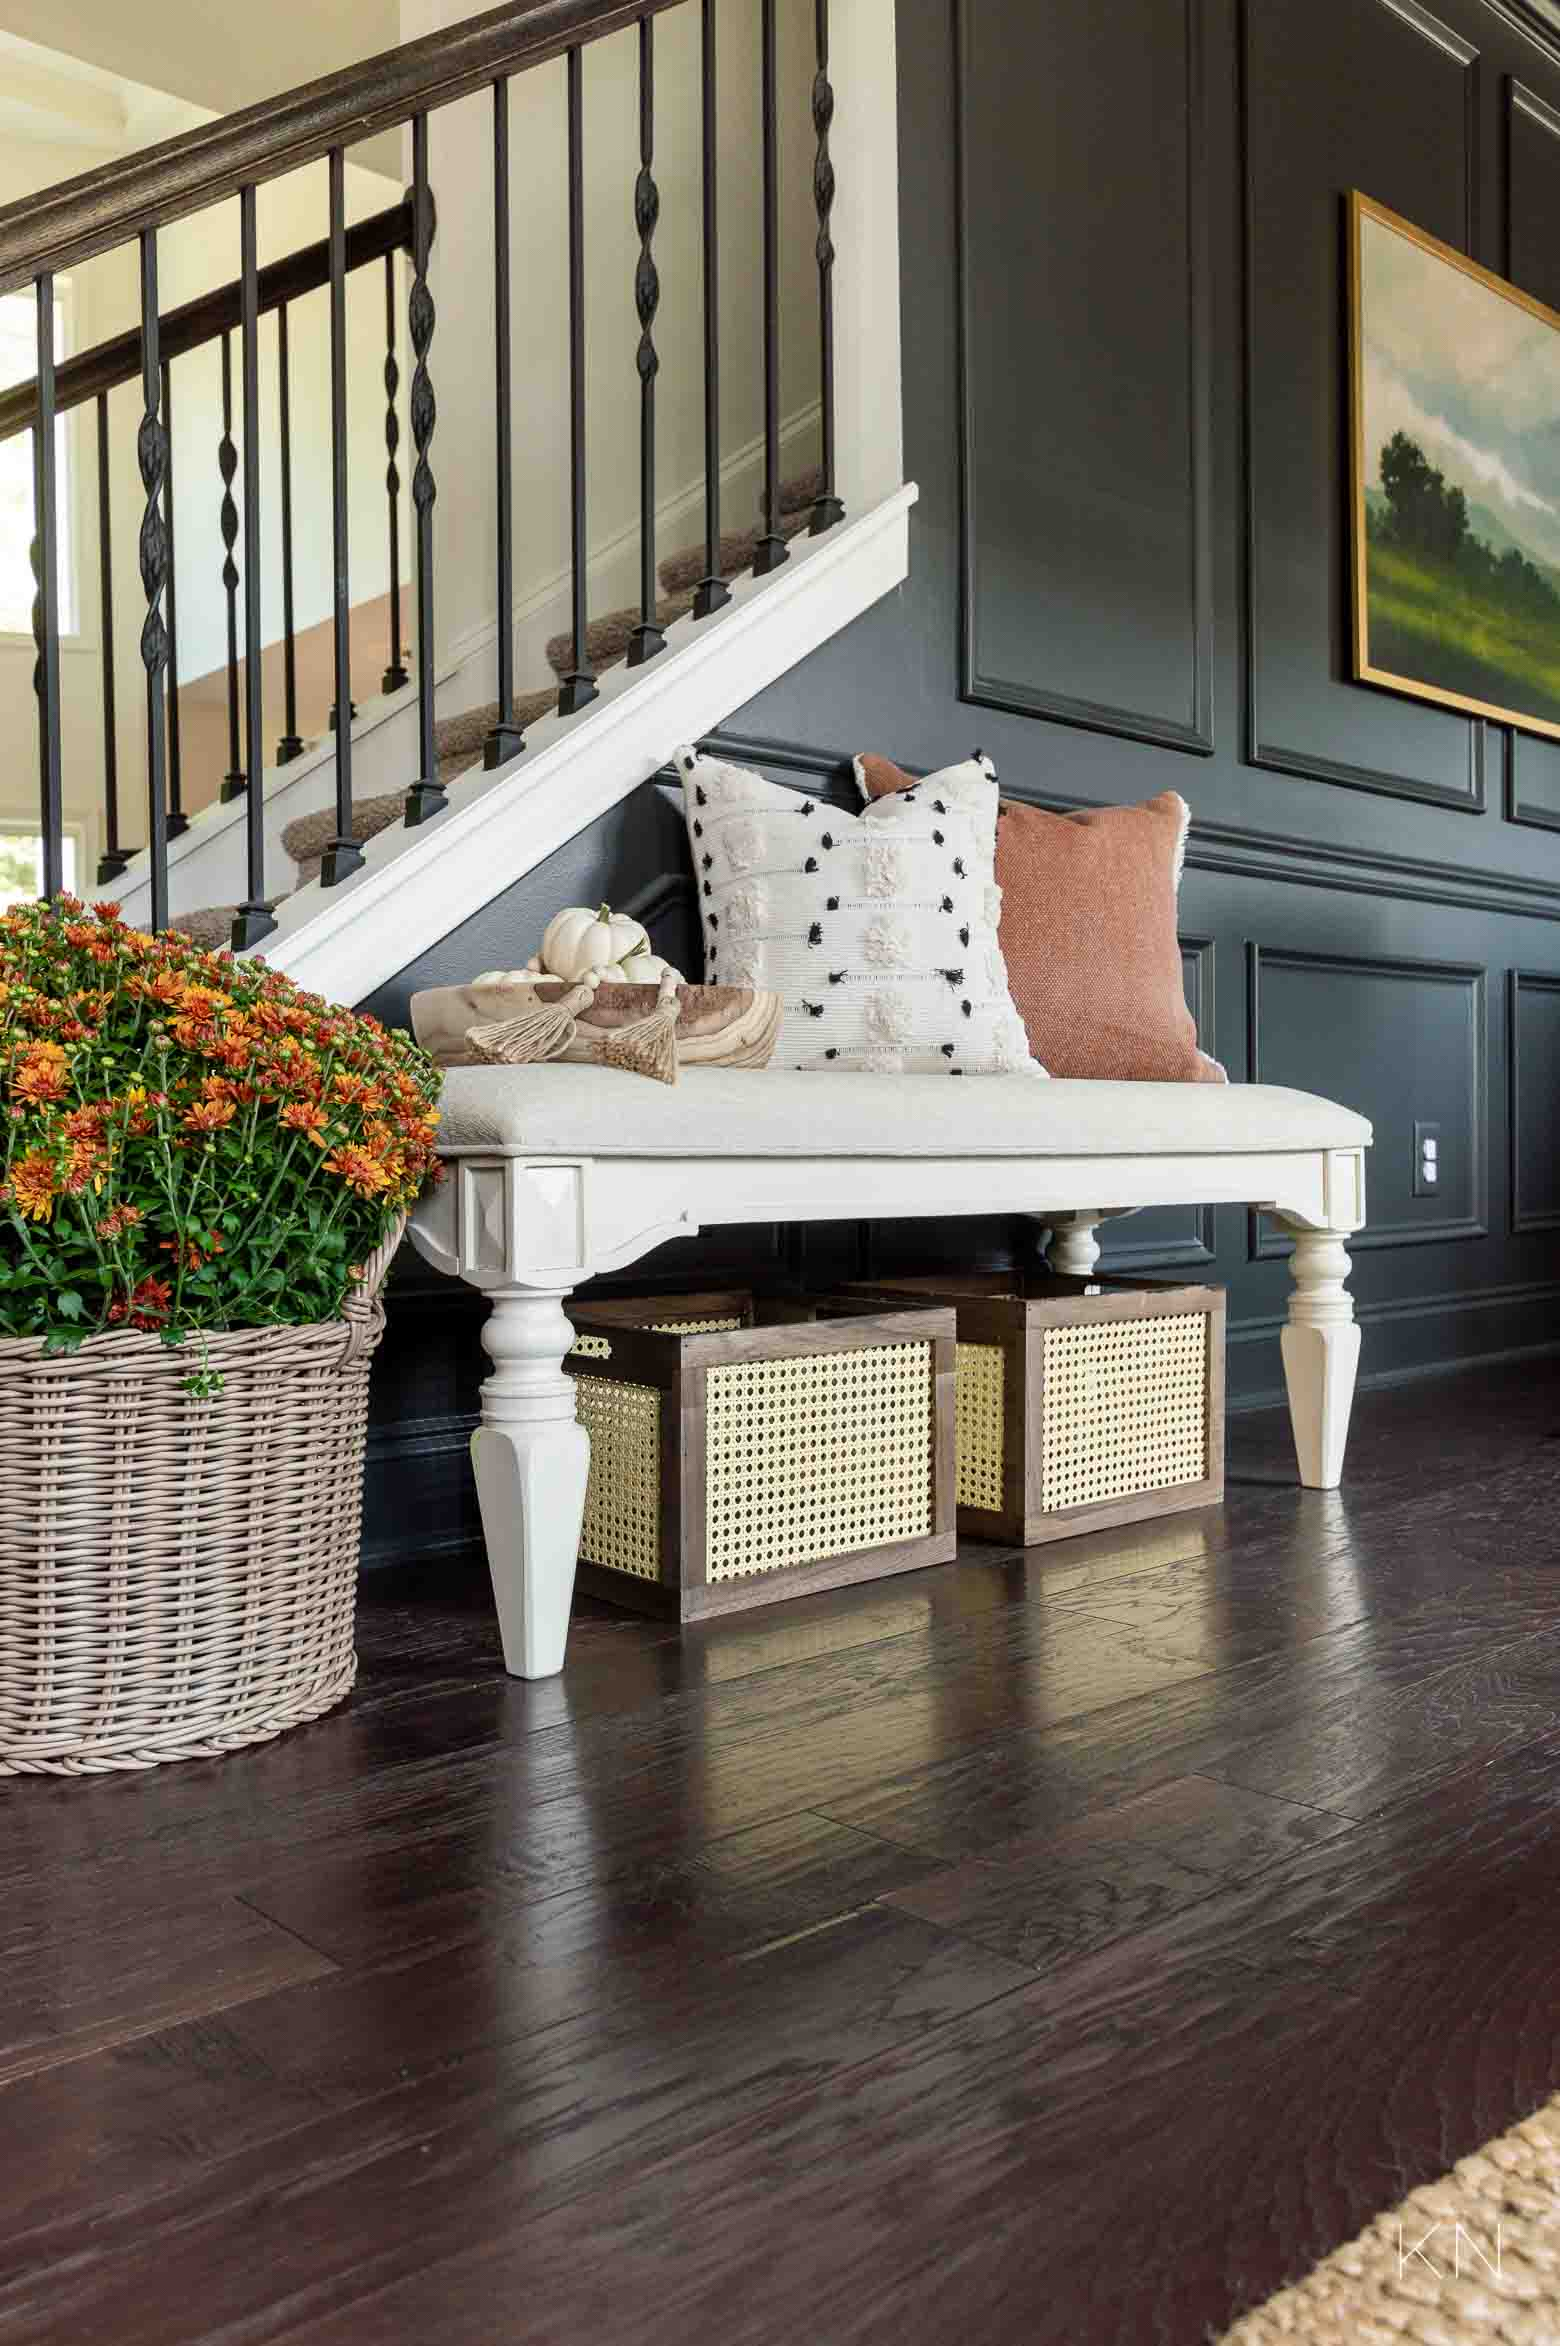 Dressing Up an Entry Bench with Fall Home Decor Ideas